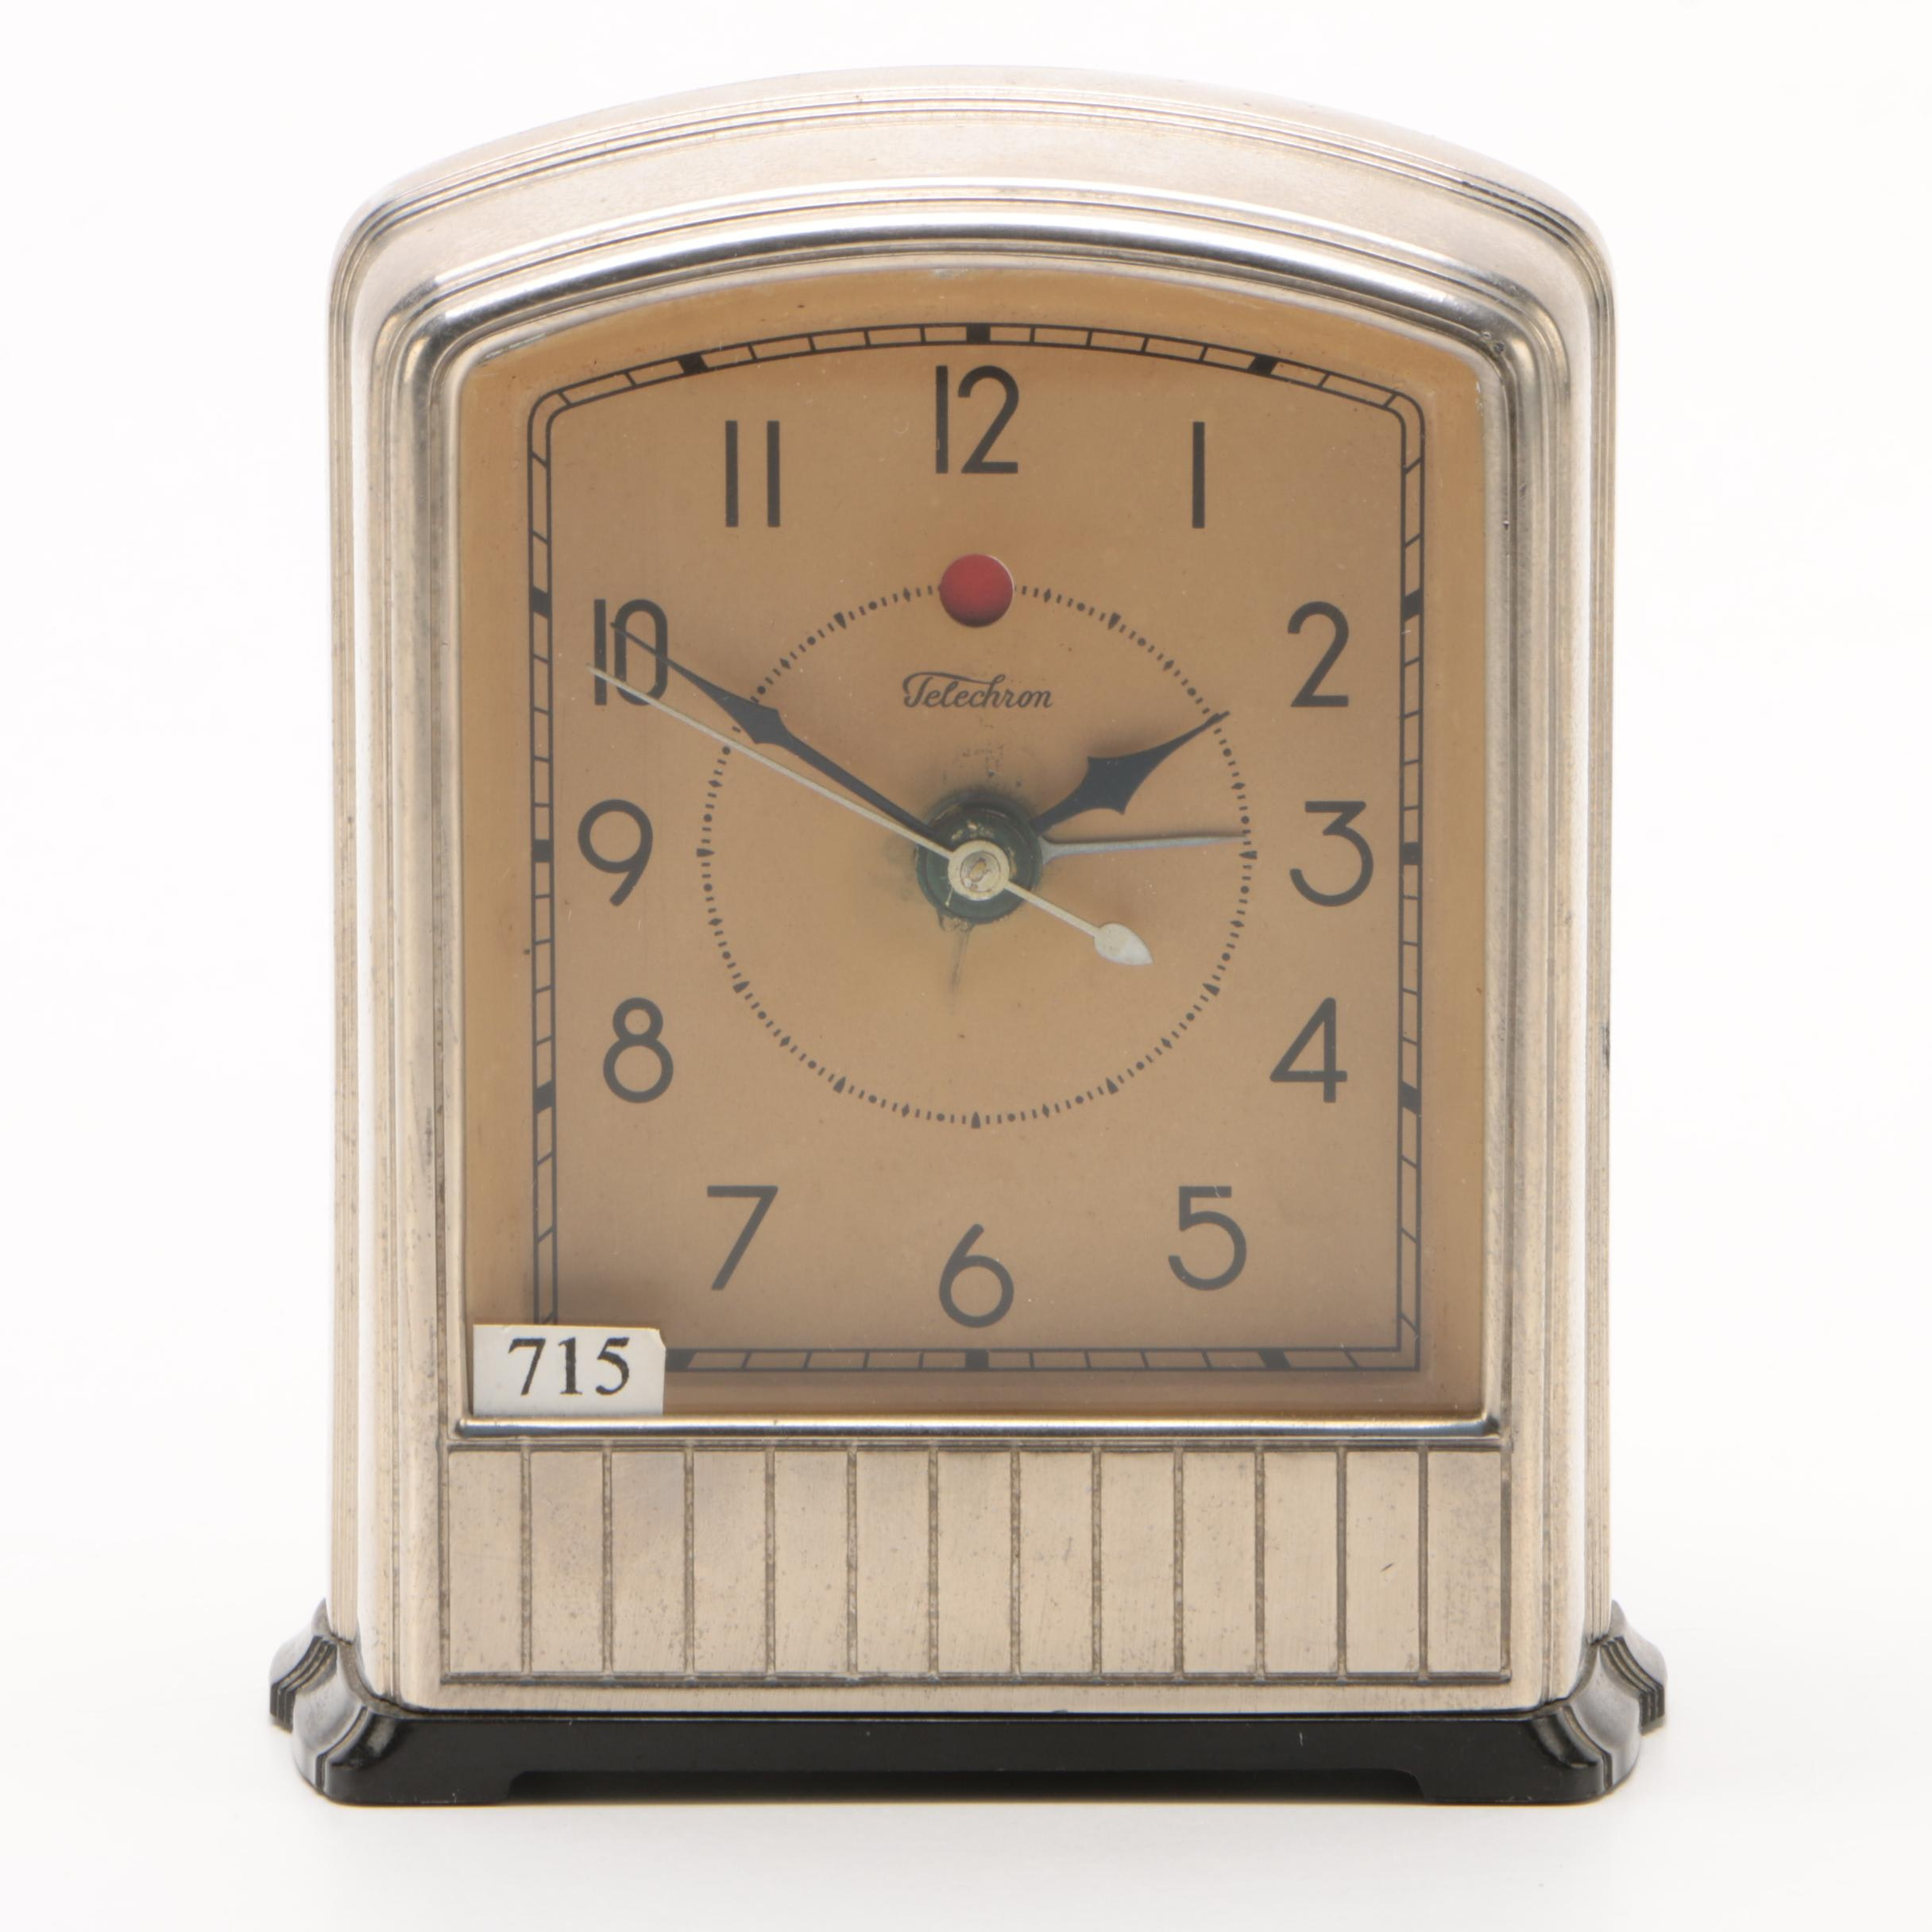 Telechron Electric Clock Model 715, Early 20th Century